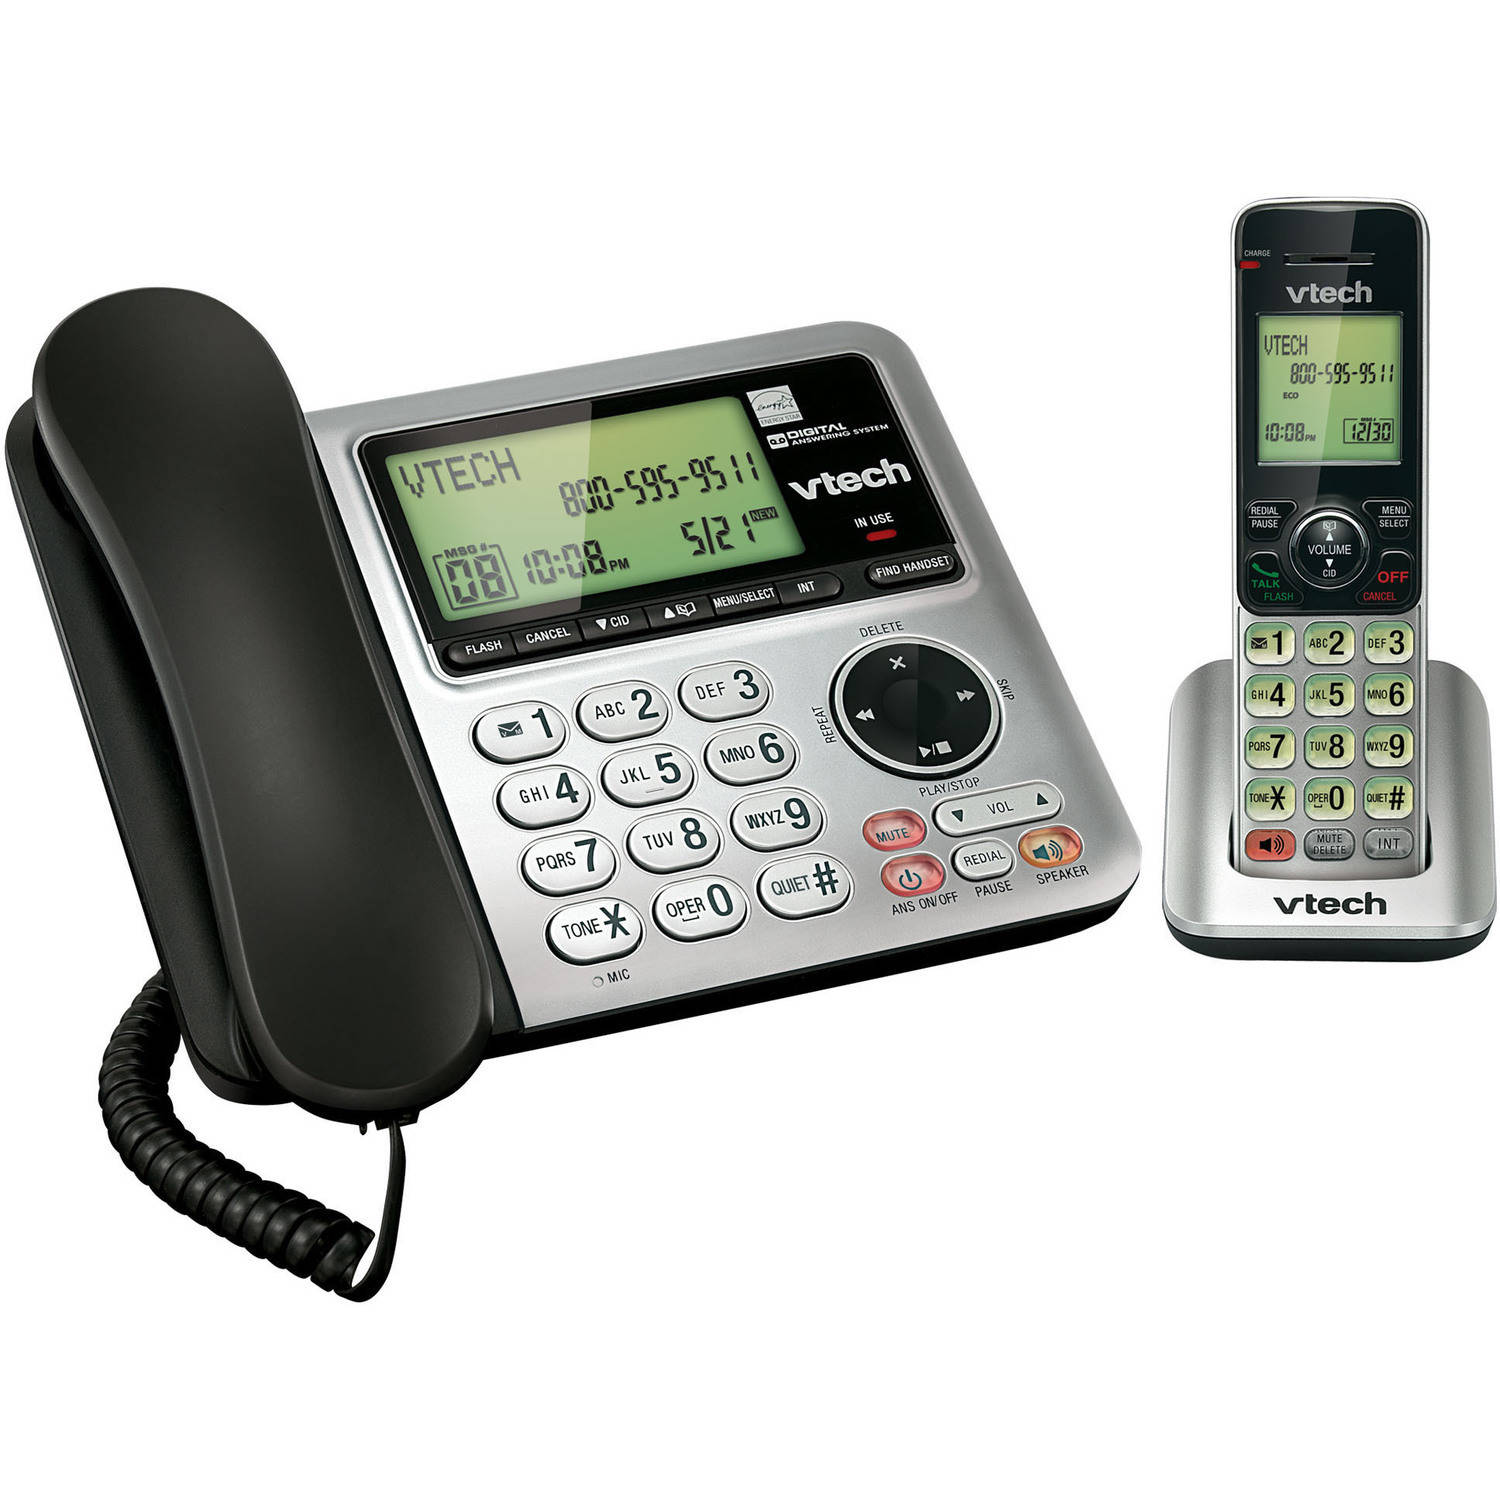 Best Wireless Home Phones Systems Wire Center Buy Circuit Boardsell Boardsuppliers Boardcircuit Landline With Answering Machines Rh Walmart Com Wi Fi Verizon Phone Connect